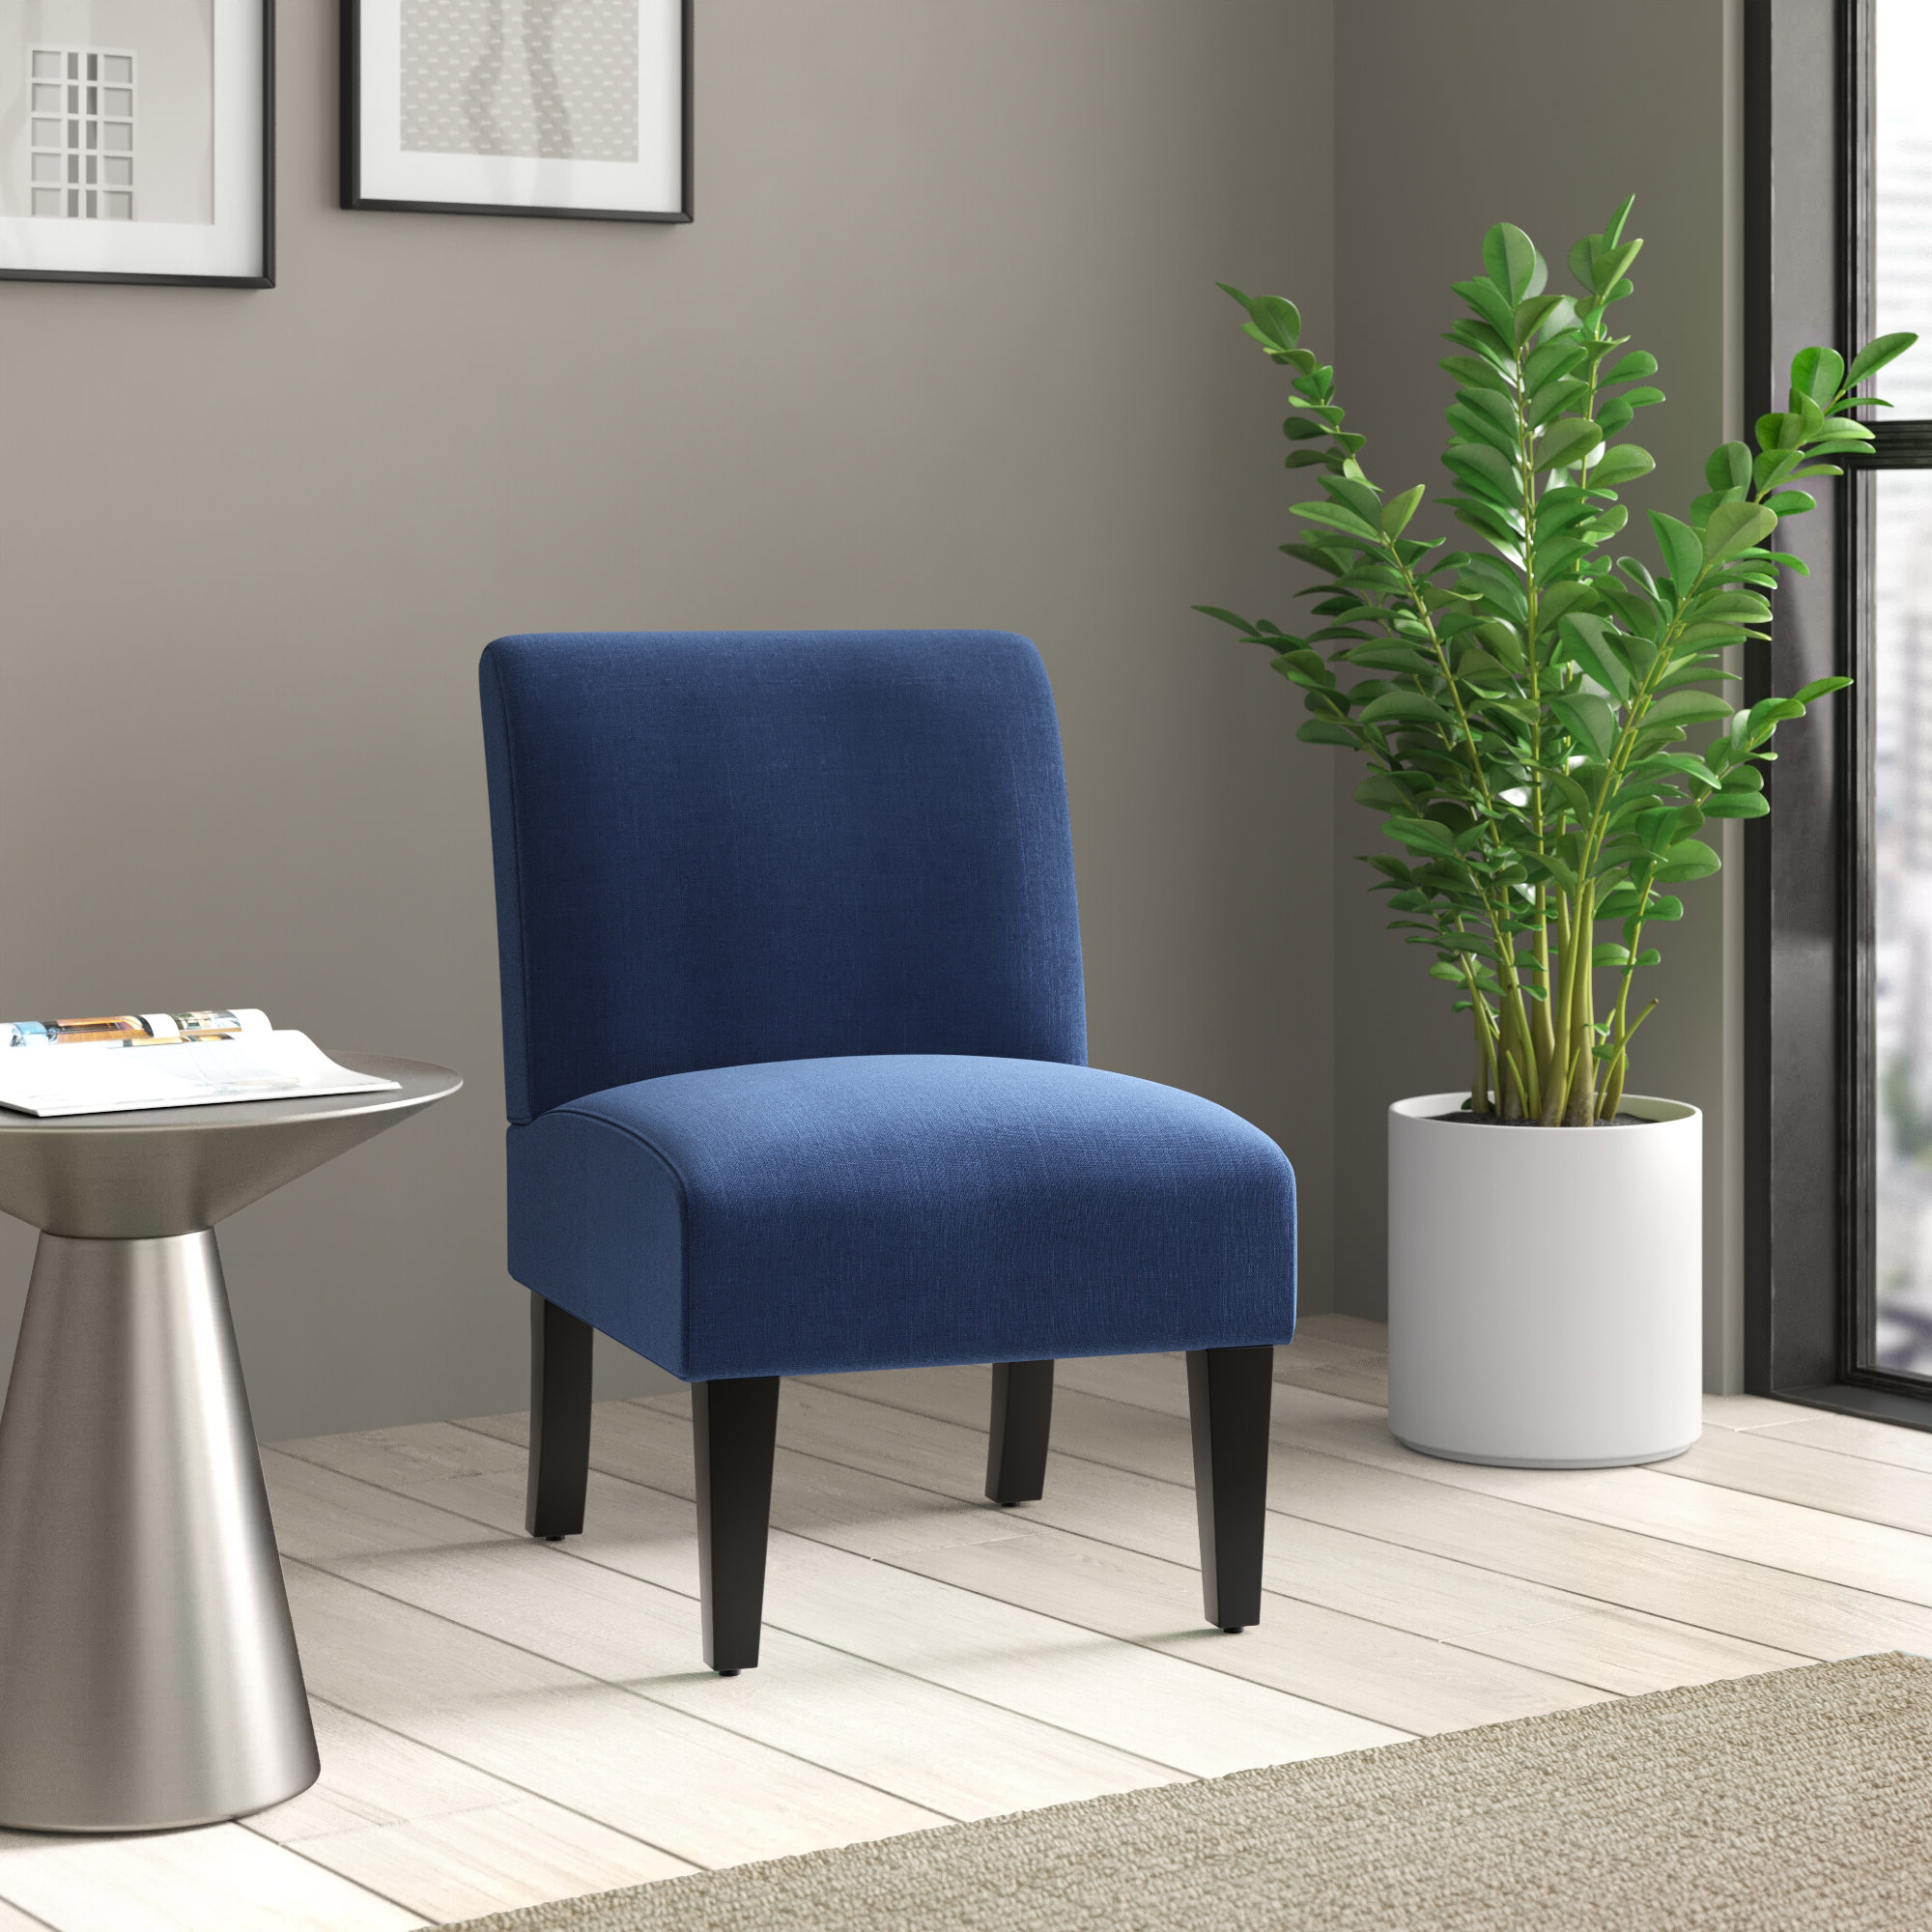 Recent Belleze Armless Contemporary Upholstered Single Curved Slipper Accent Chair Living Room Bedroom – Walmart Within Goodyear Slipper Chairs (View 8 of 20)